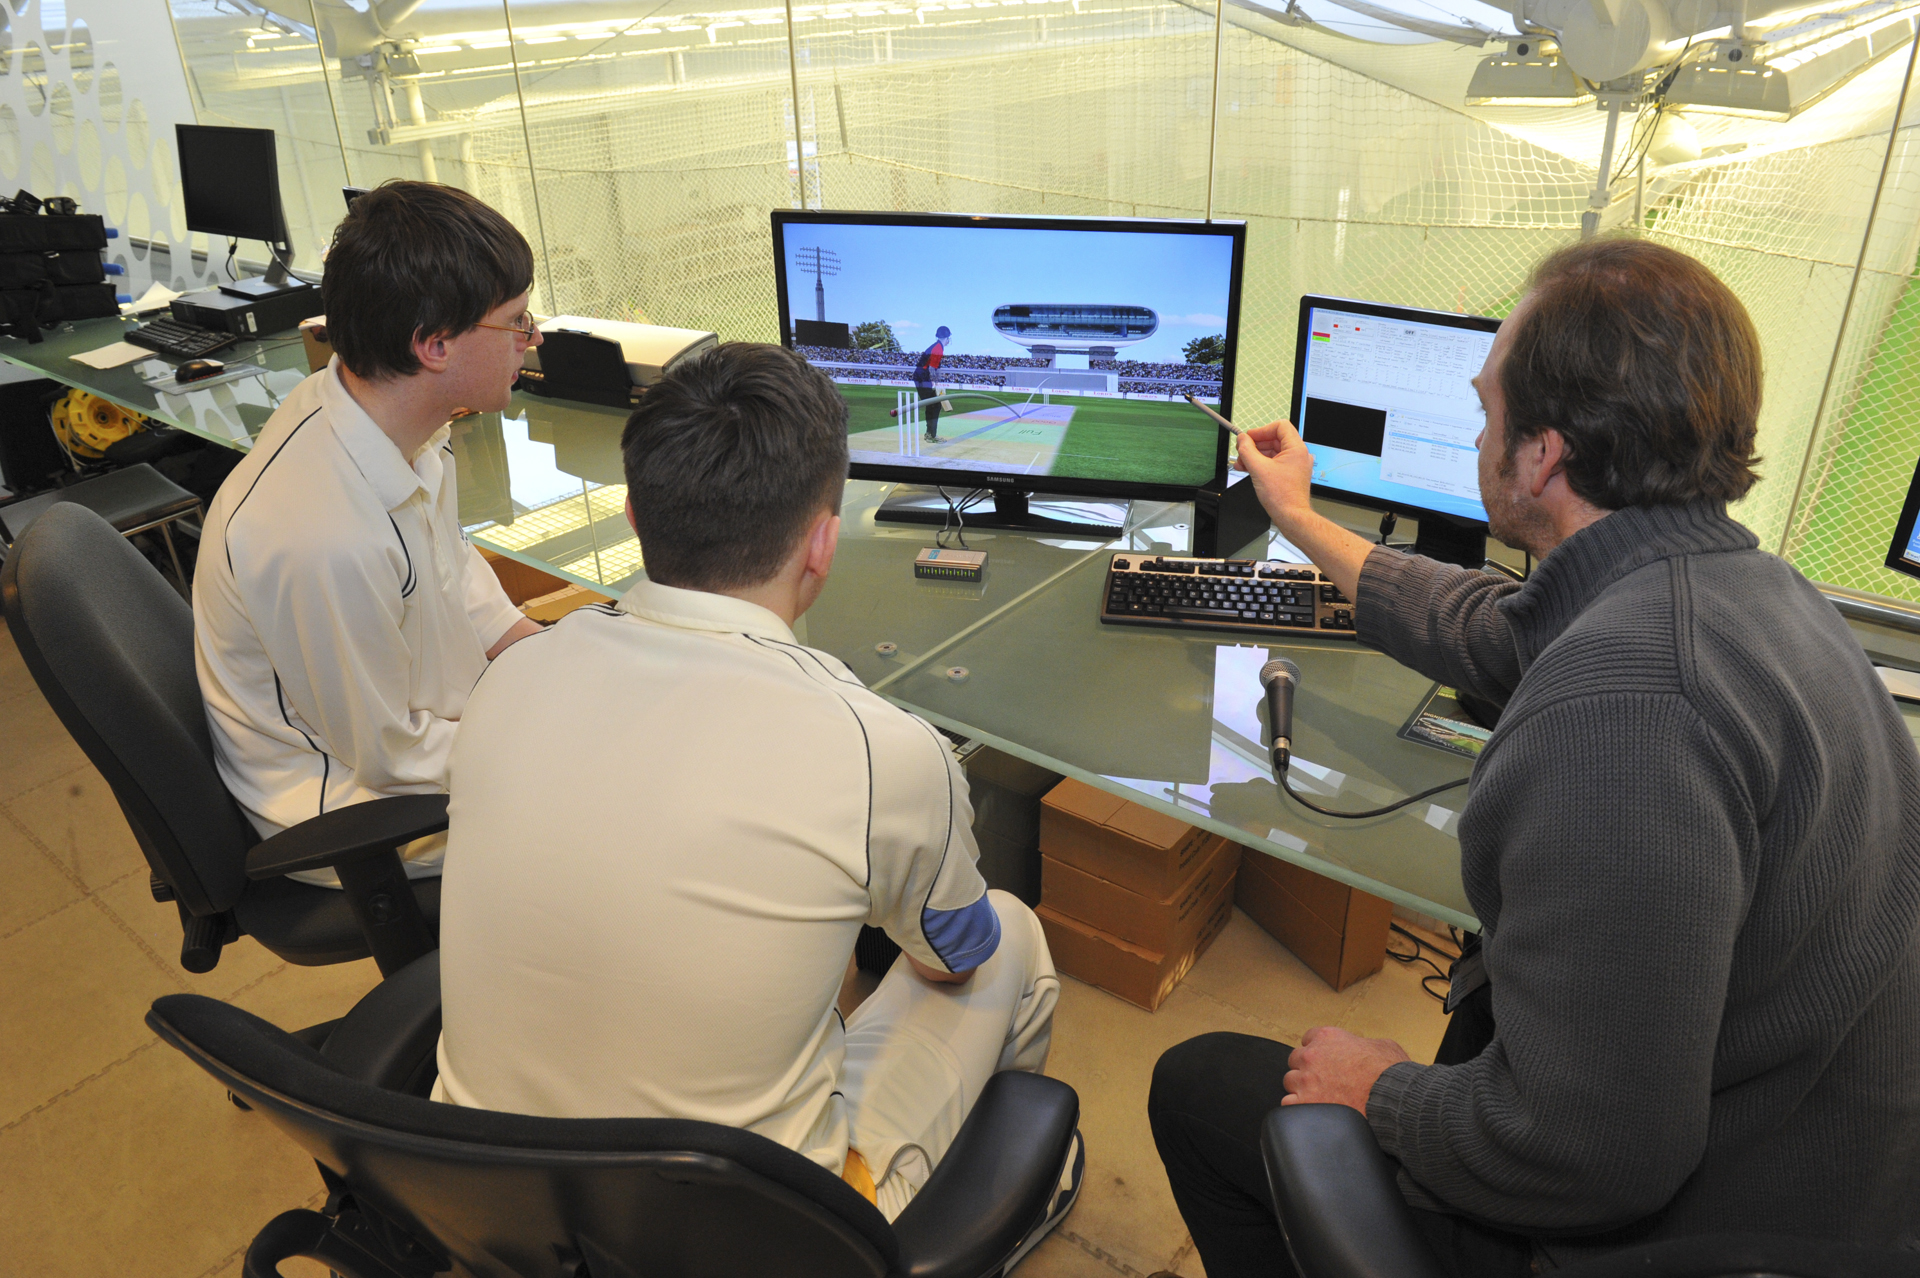 The Cricketer Magazine competition winners get their bowling assessed by Hawk Eye at Lords Indoor Cricket School